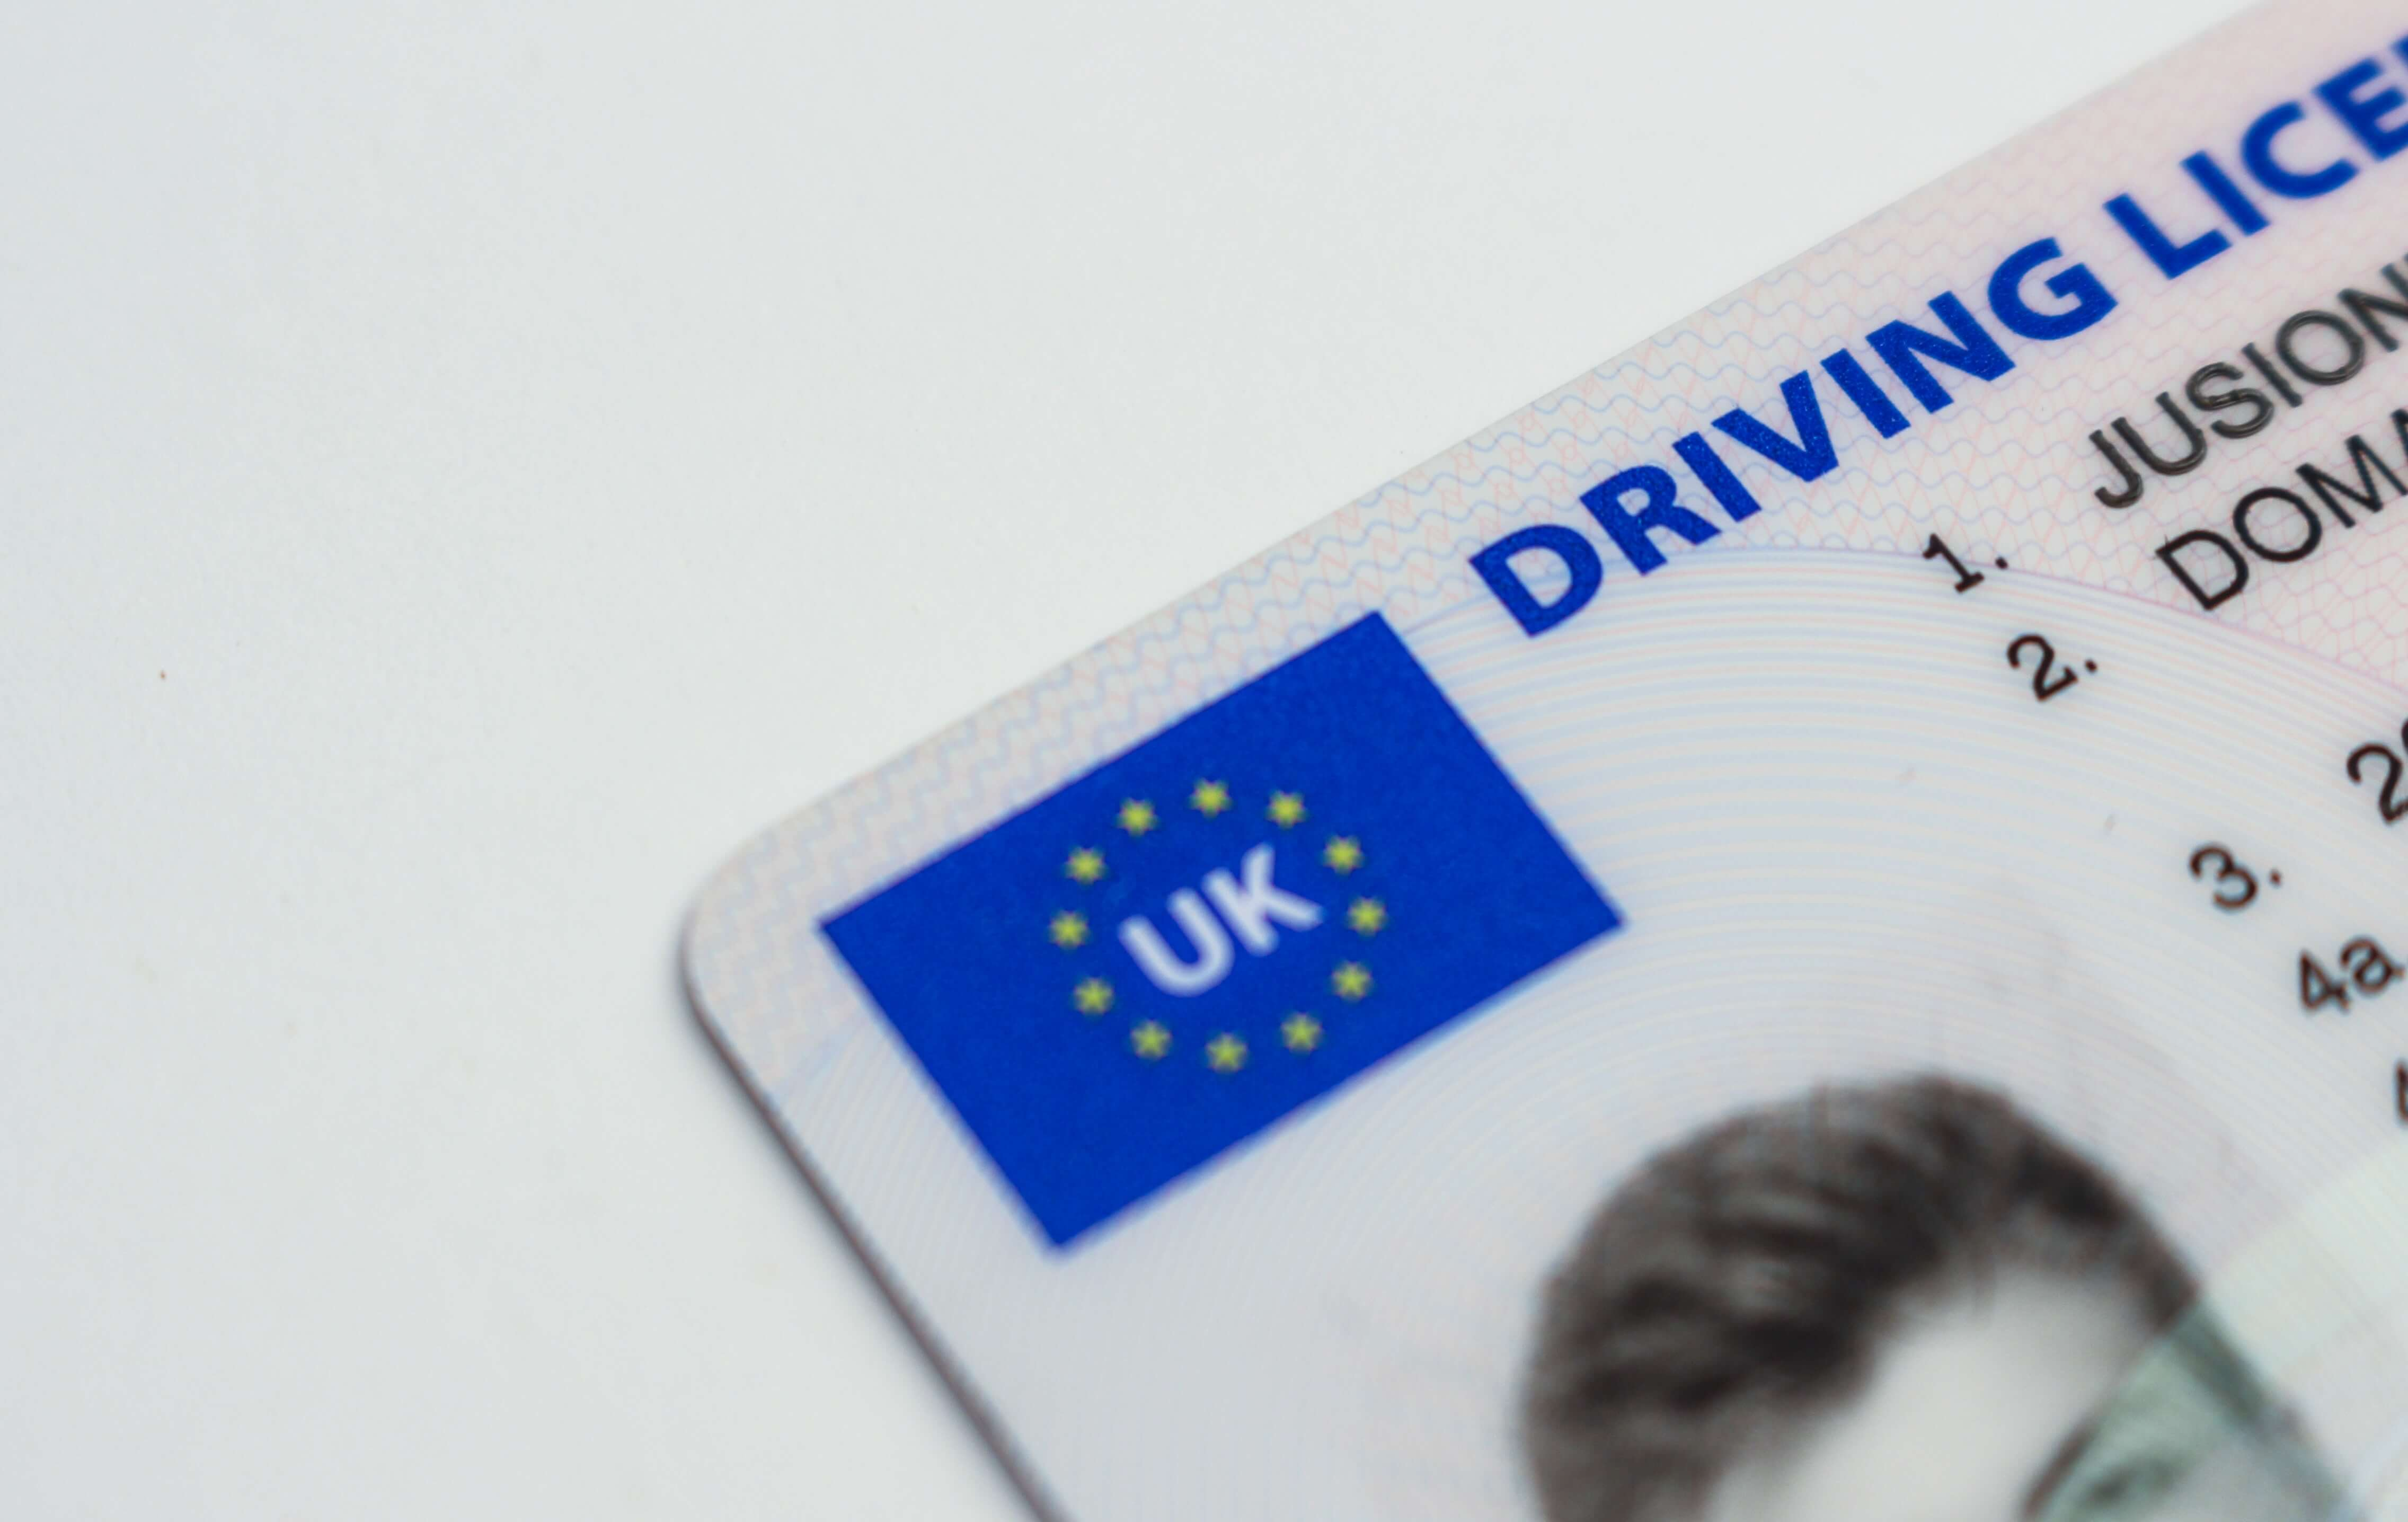 drivers-licence-notlost-property